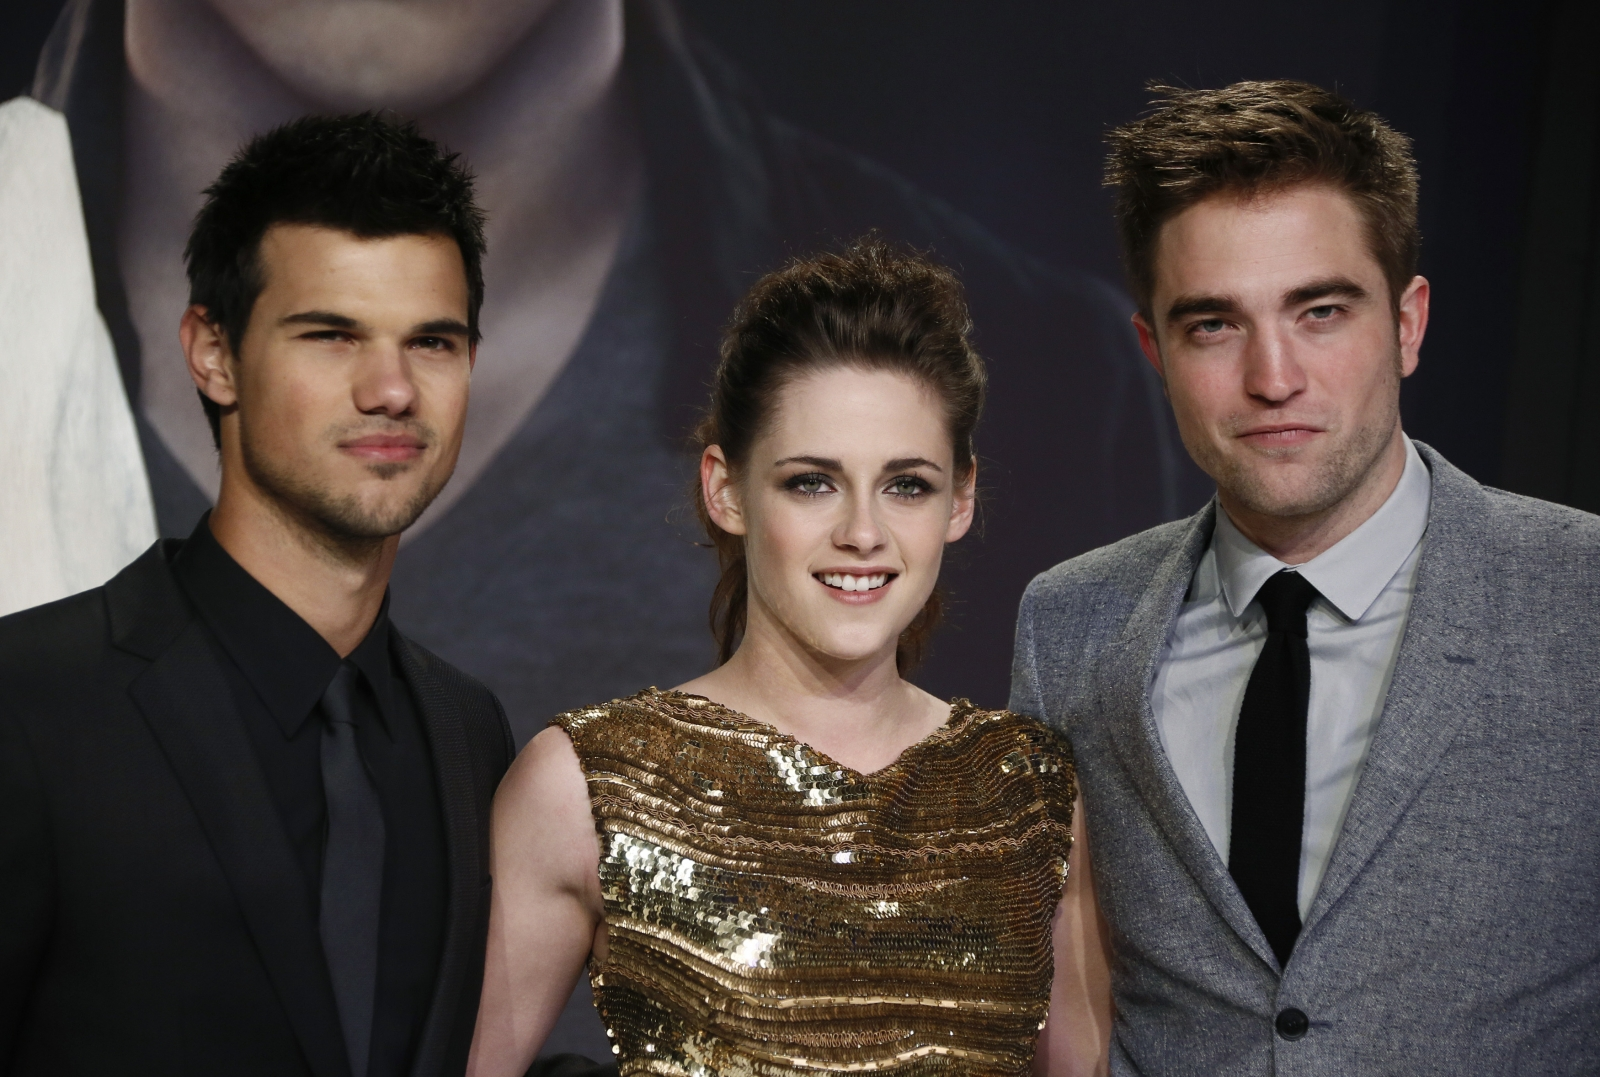 Are the stars of twilight dating